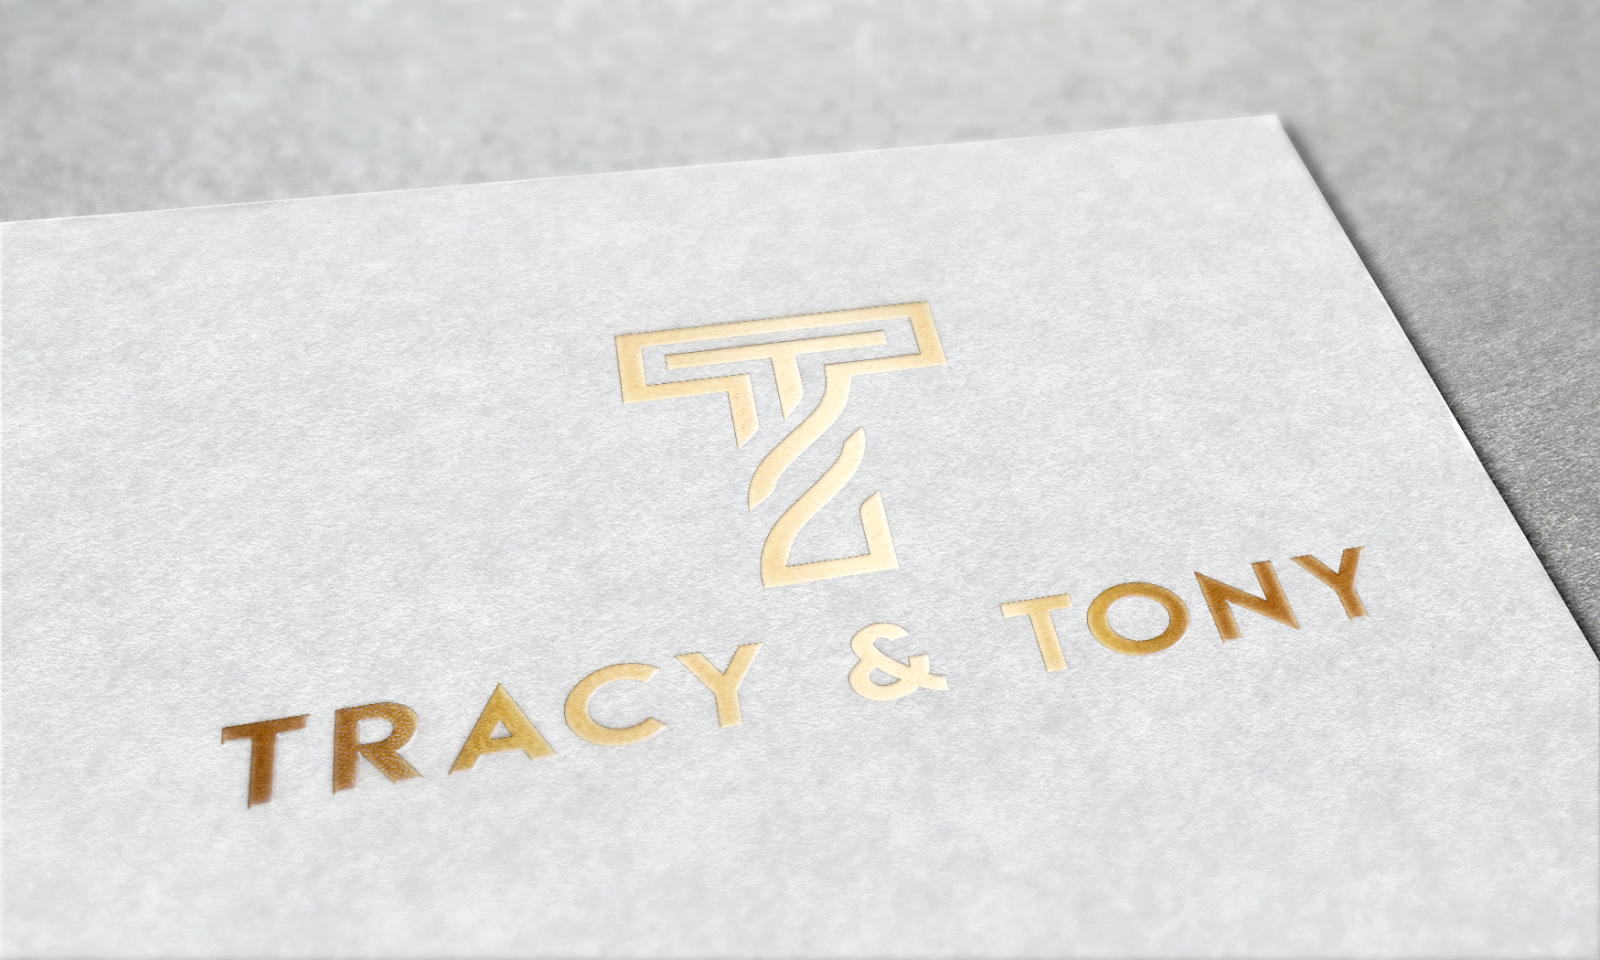 TRACY SKINCARE & HEALTHY